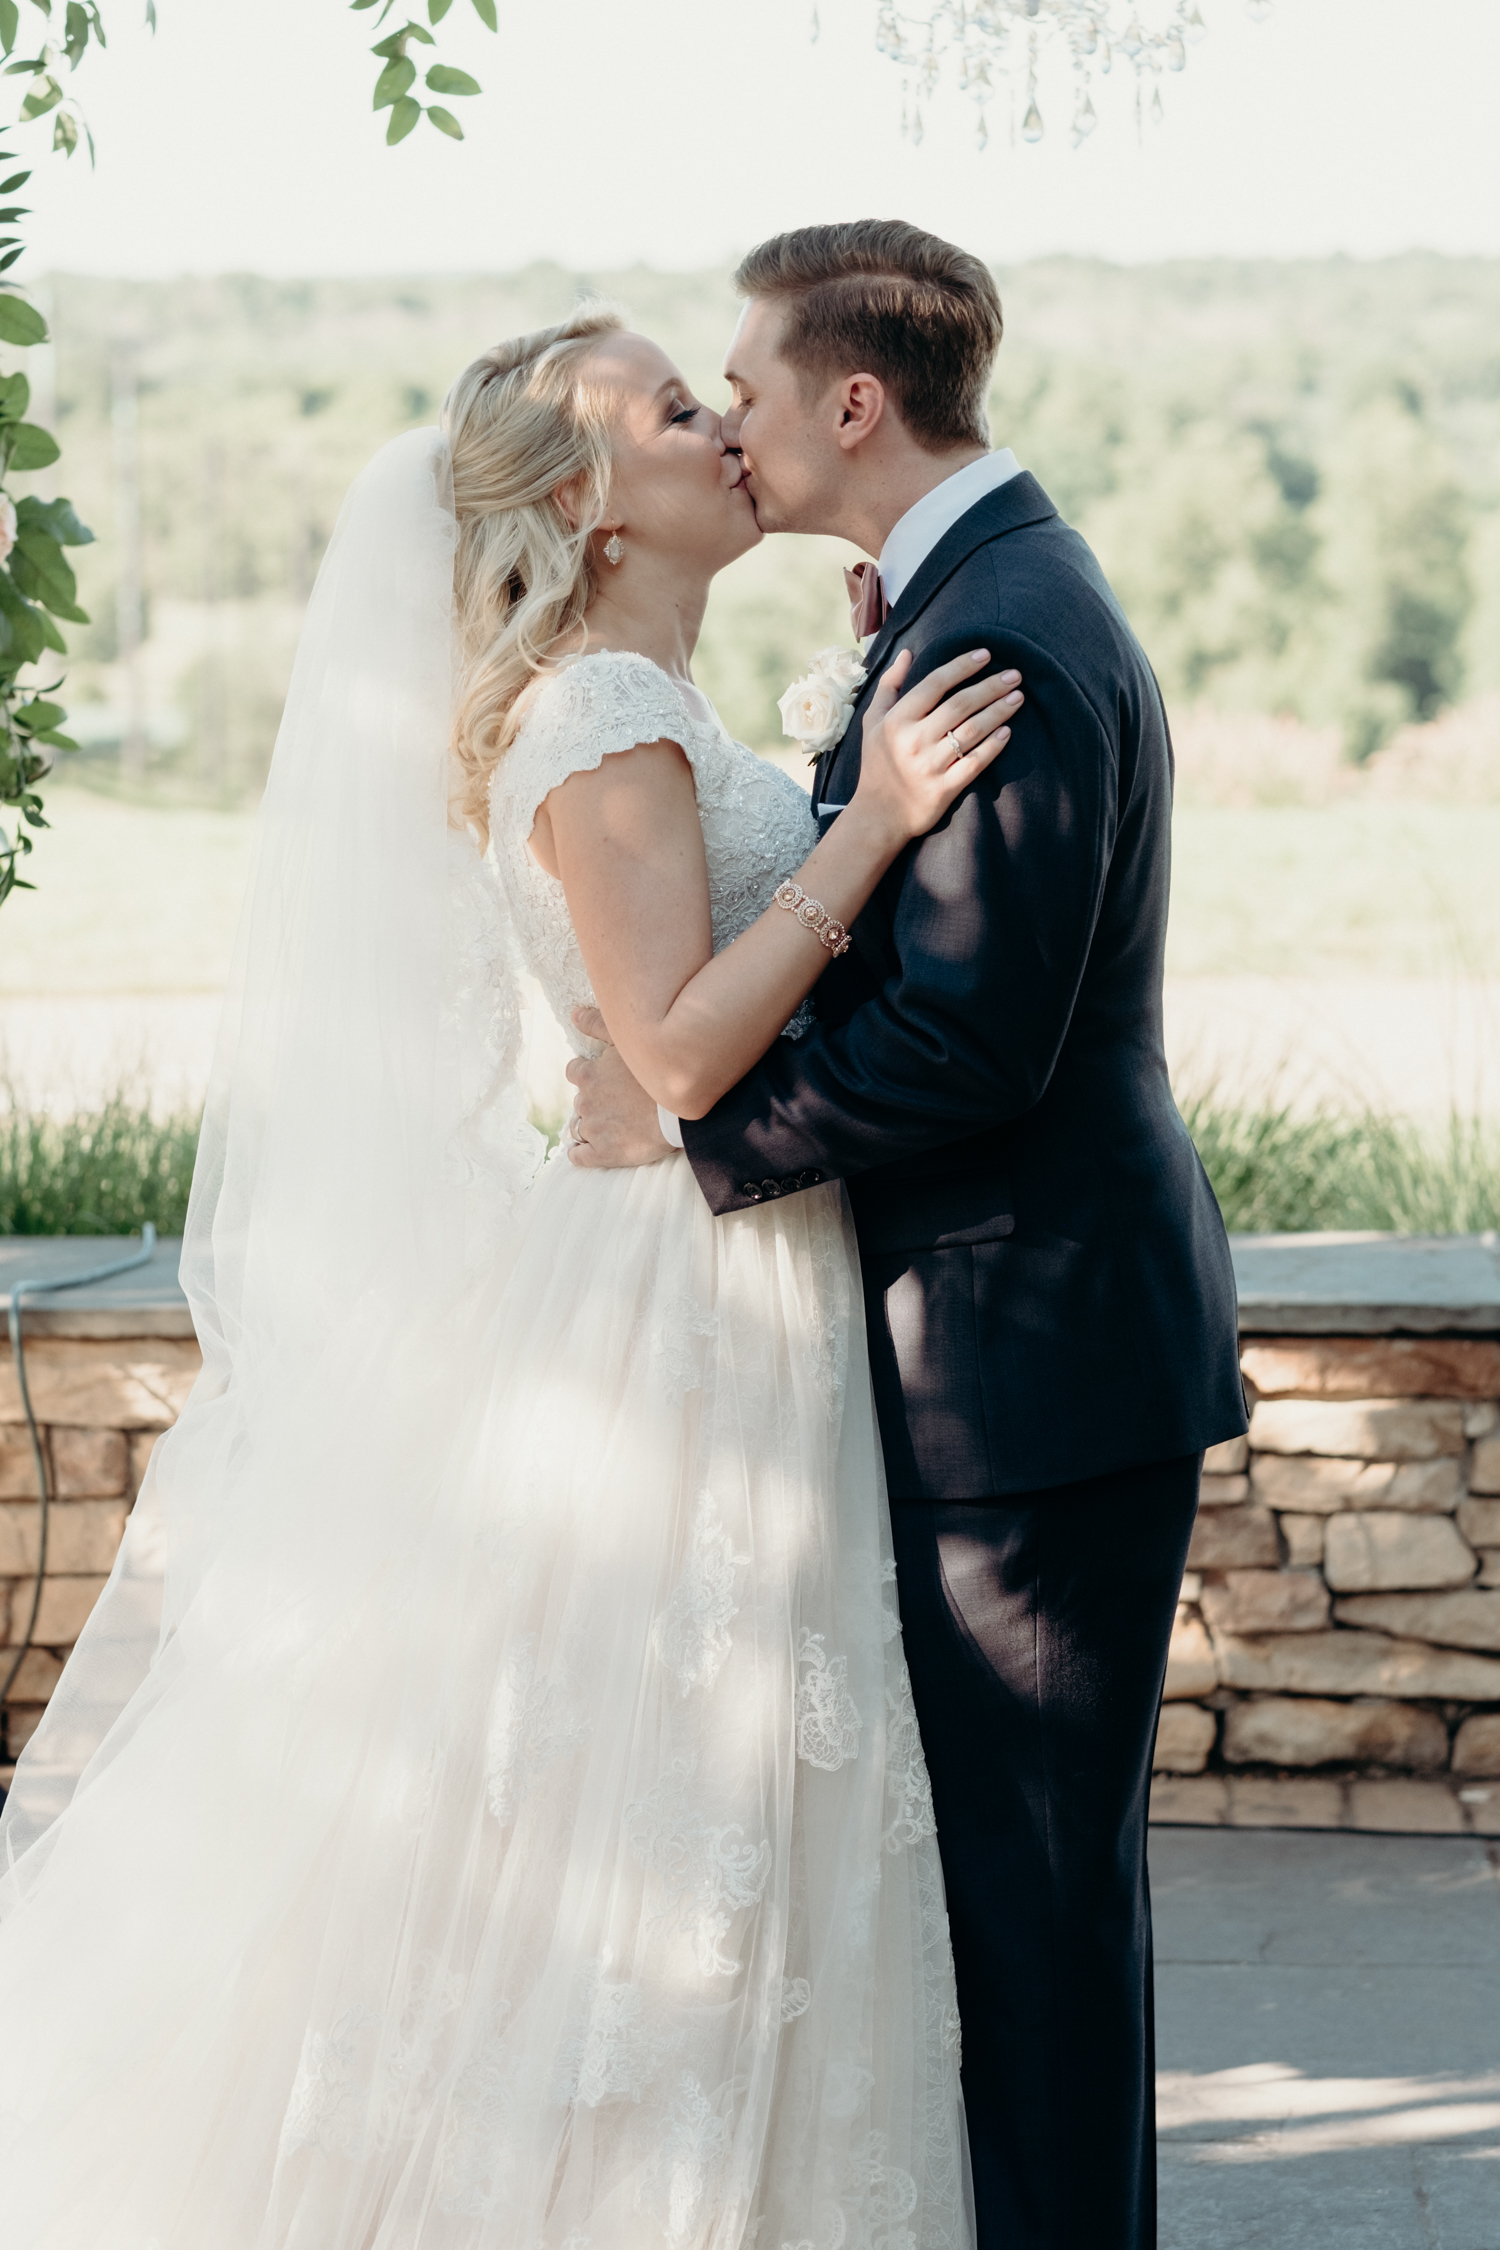 A bride and groom share their first kiss during their outdoor wedding ceremony at Lansdowne Resort.